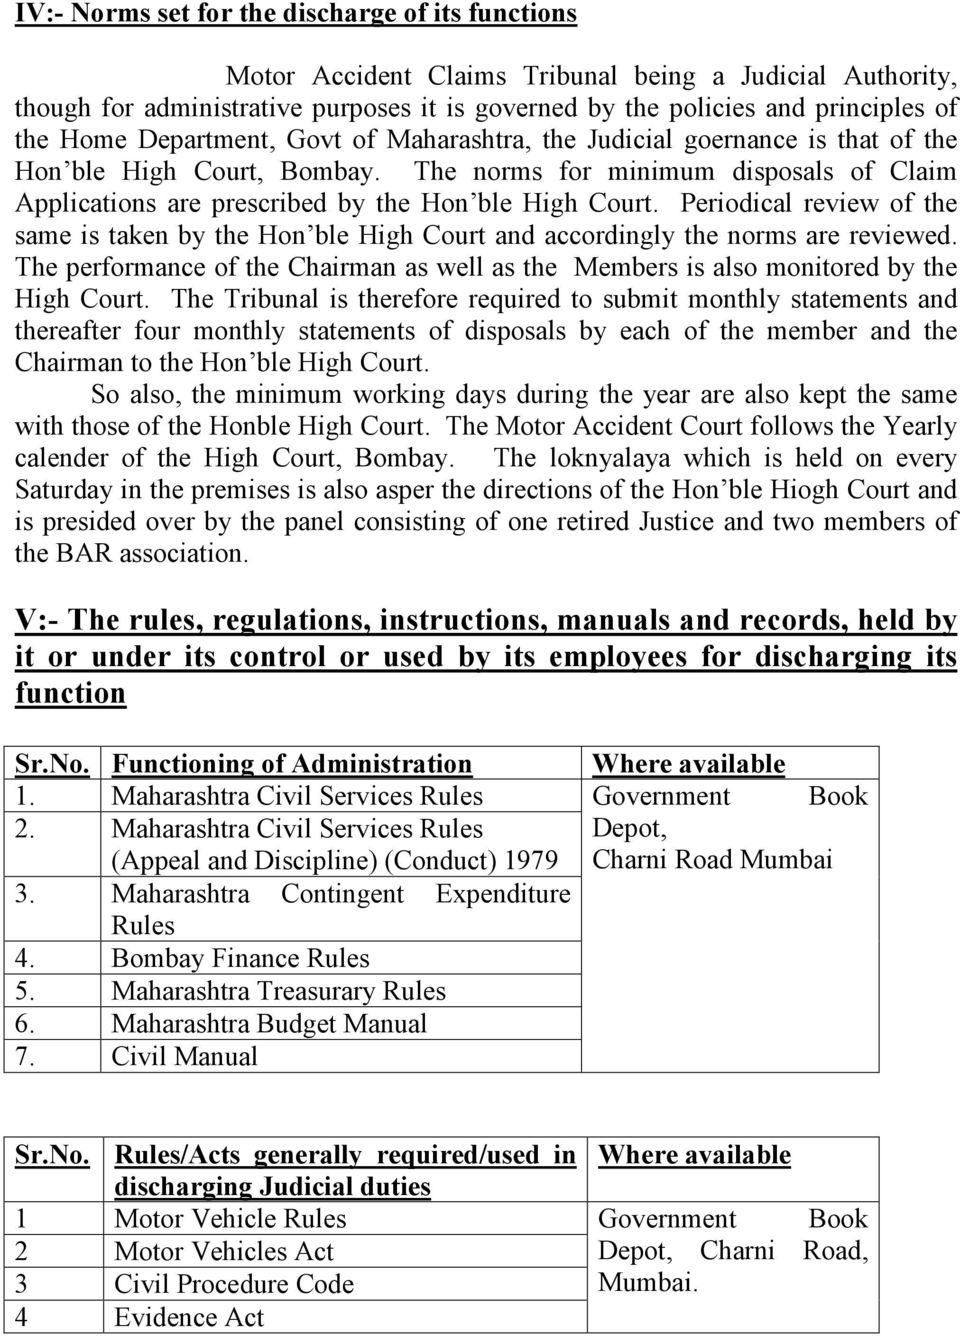 Periodical review of the same is taken by the Hon ble High Court and accordingly the norms are reviewed. The performance of the Chairman as well as the Members is also monitored by the High Court.